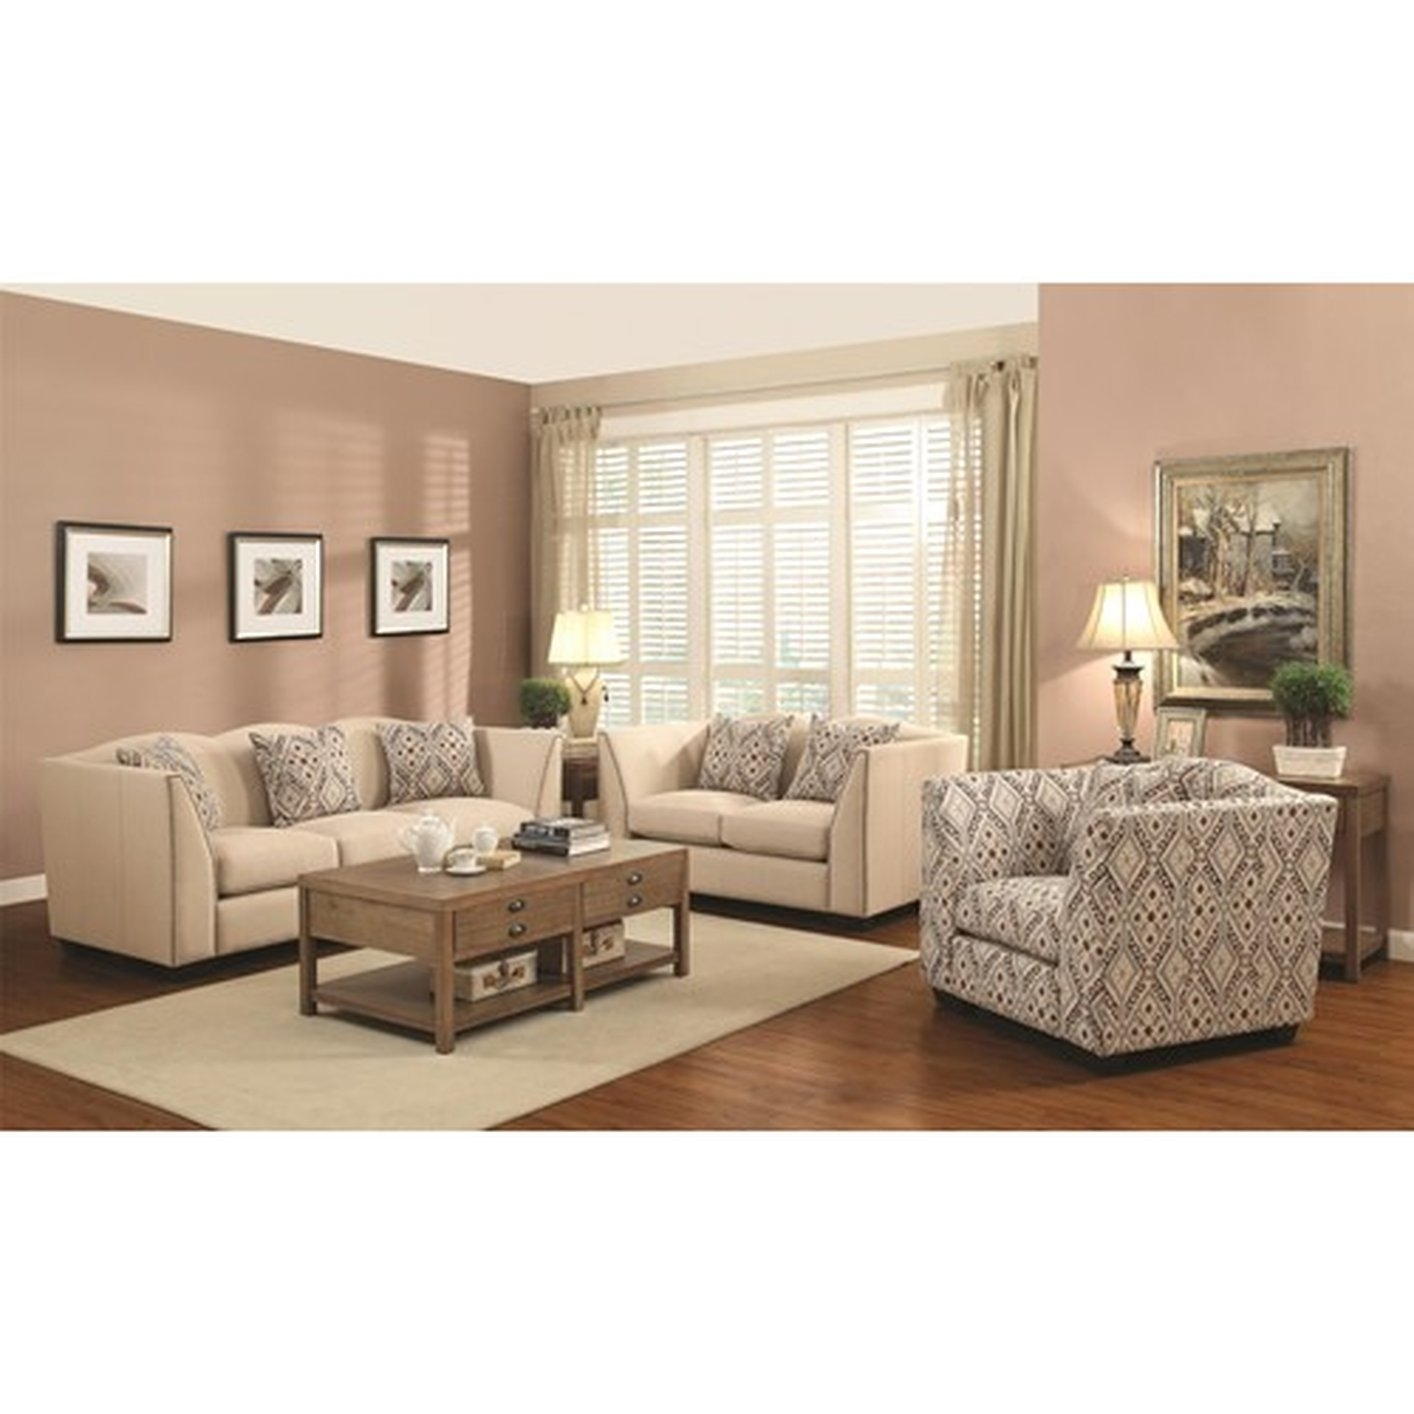 Siana Beige Fabric Accent Chair – Steal A Sofa Furniture Outlet Los Pertaining To Sofa And Accent Chair Sets (View 8 of 10)